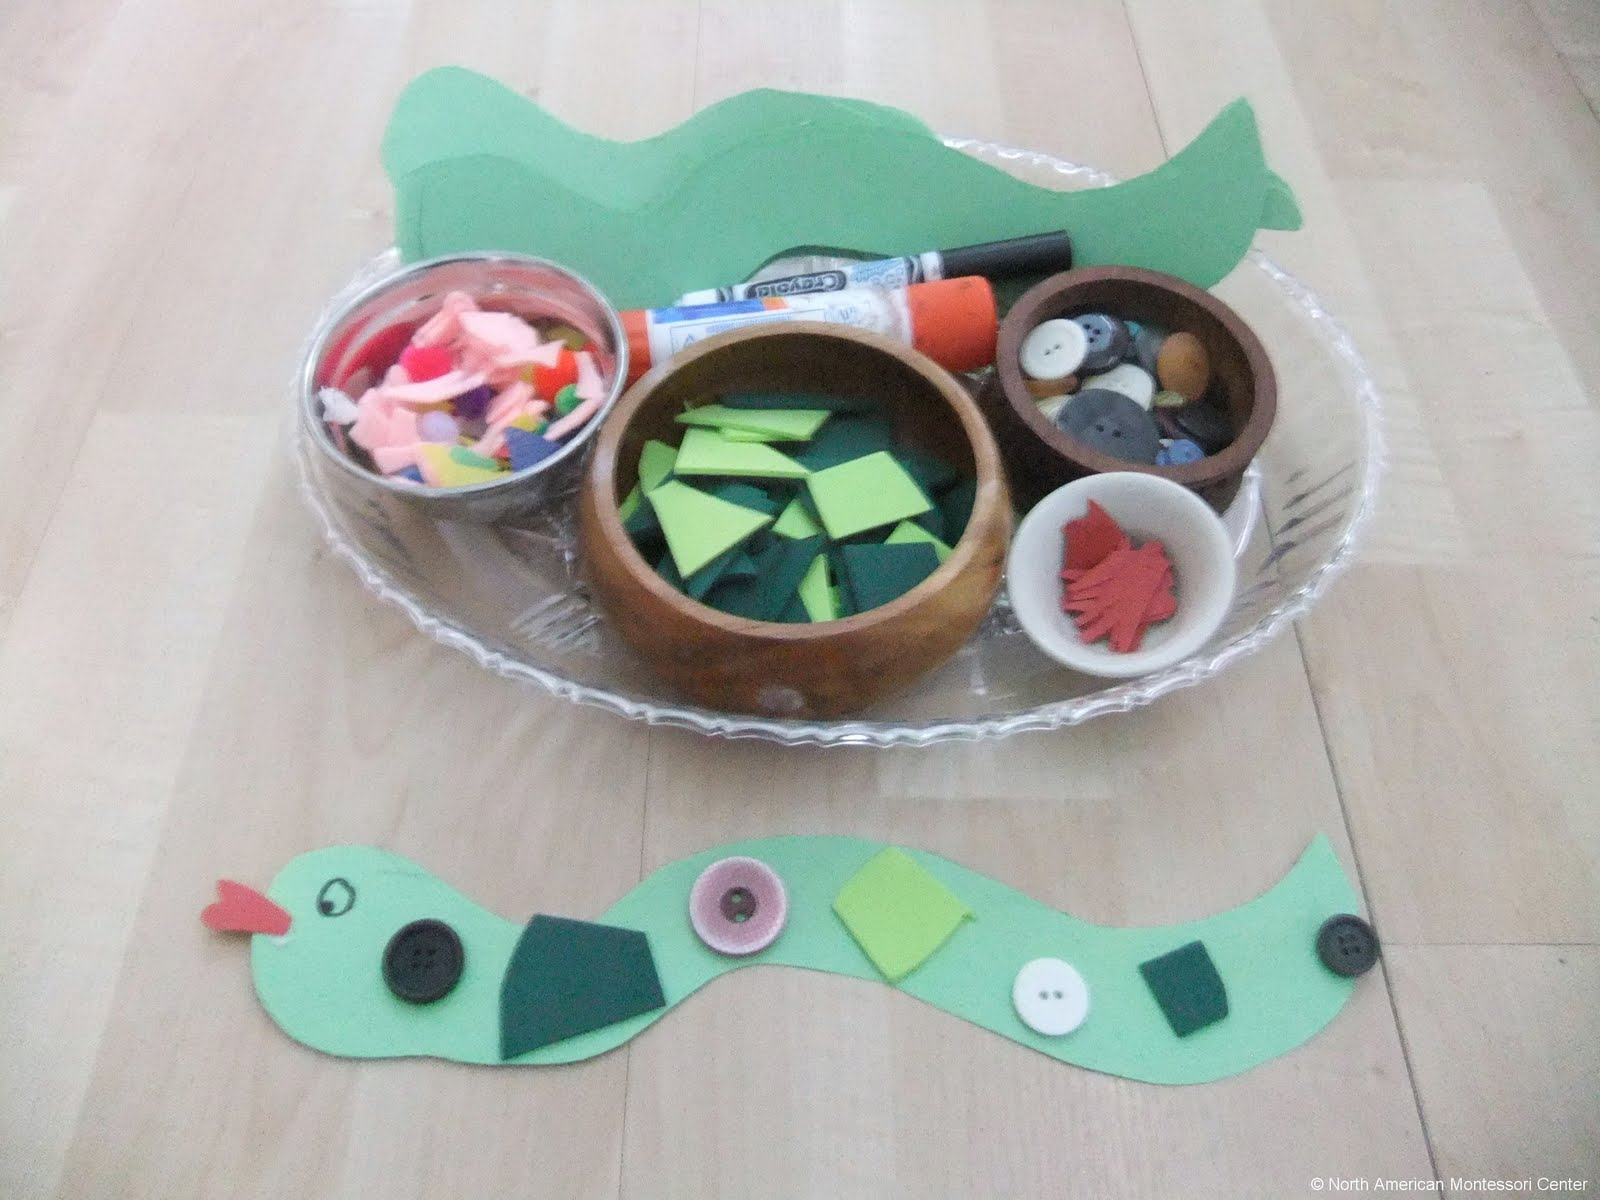 NAMC montessori preschool classrooms curriculum activities south america decorate a snake